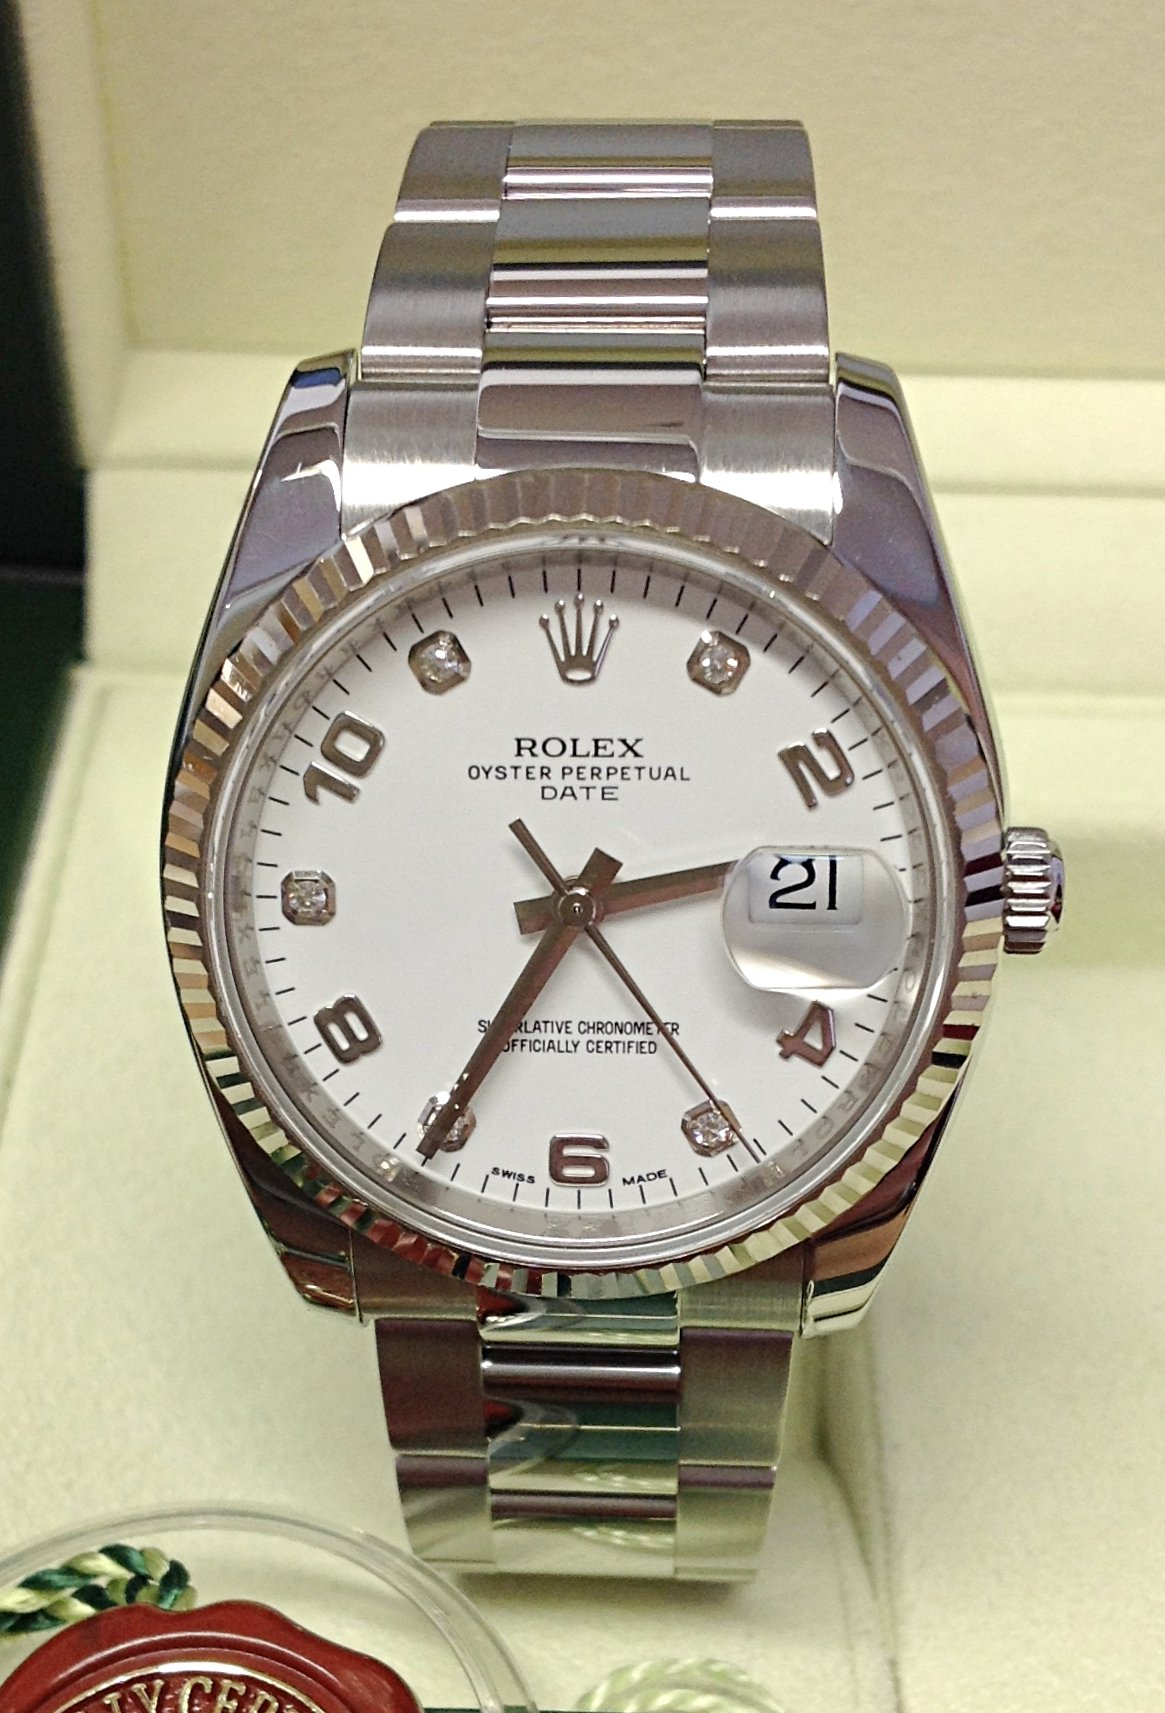 Rolex Oyster Perpetual Date 115234 34mm